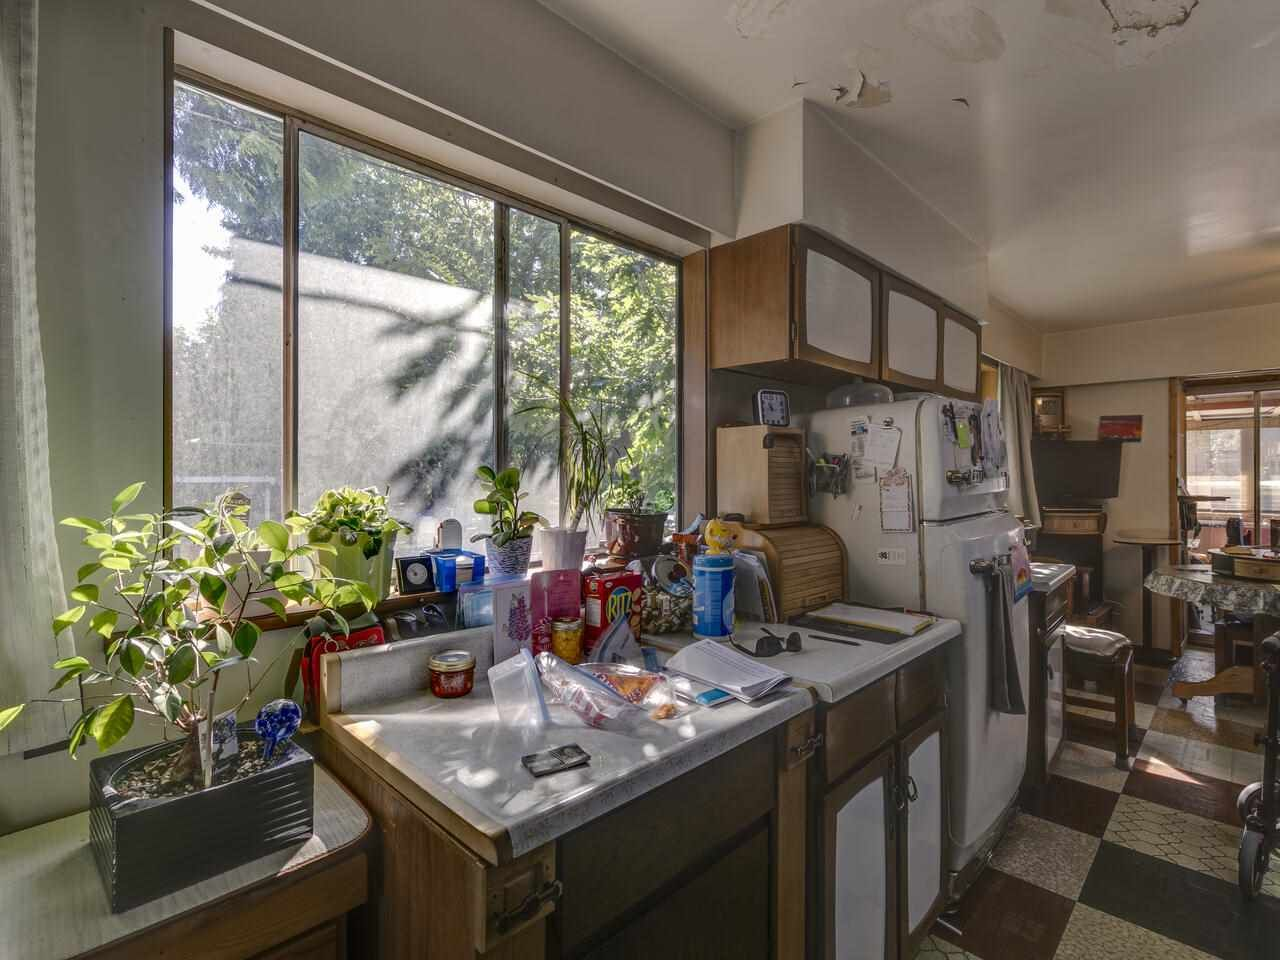 """Photo 20: Photos: 2796 E 4TH Avenue in Vancouver: Renfrew VE House for sale in """"Renfrew Heights"""" (Vancouver East)  : MLS®# R2496647"""